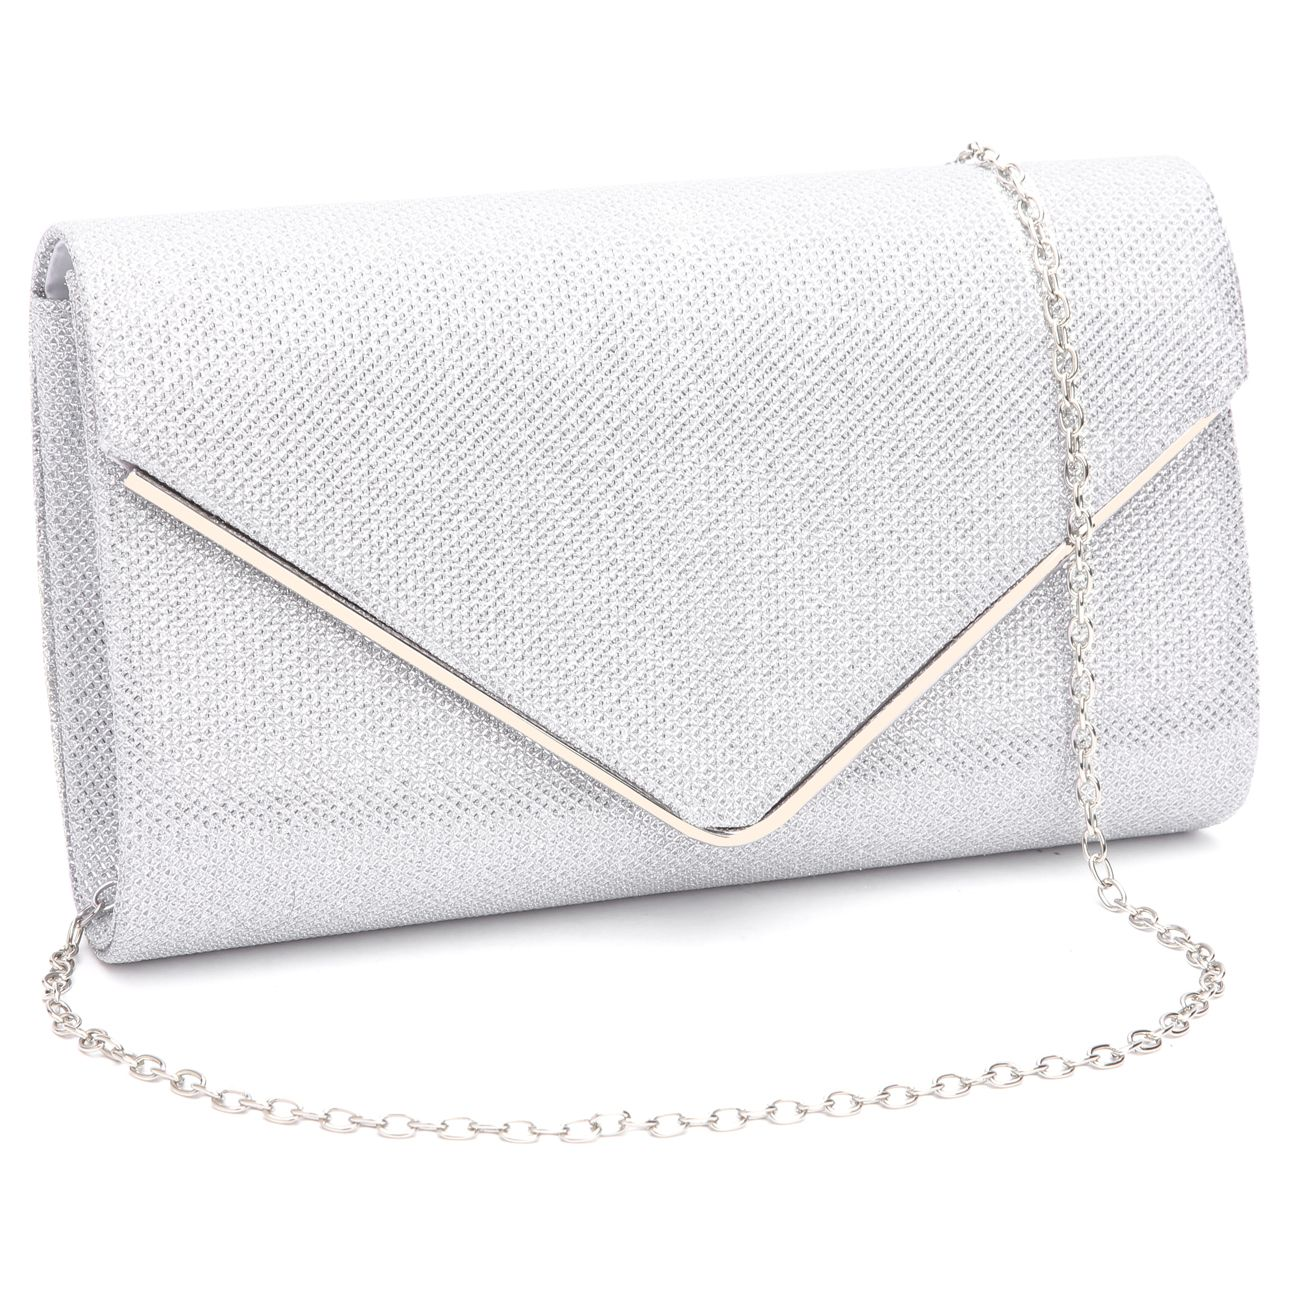 10596cf8b1f37 Womens Shining Envelope Clutch Purses Evening Bag Handbags For Wedding and  Party.